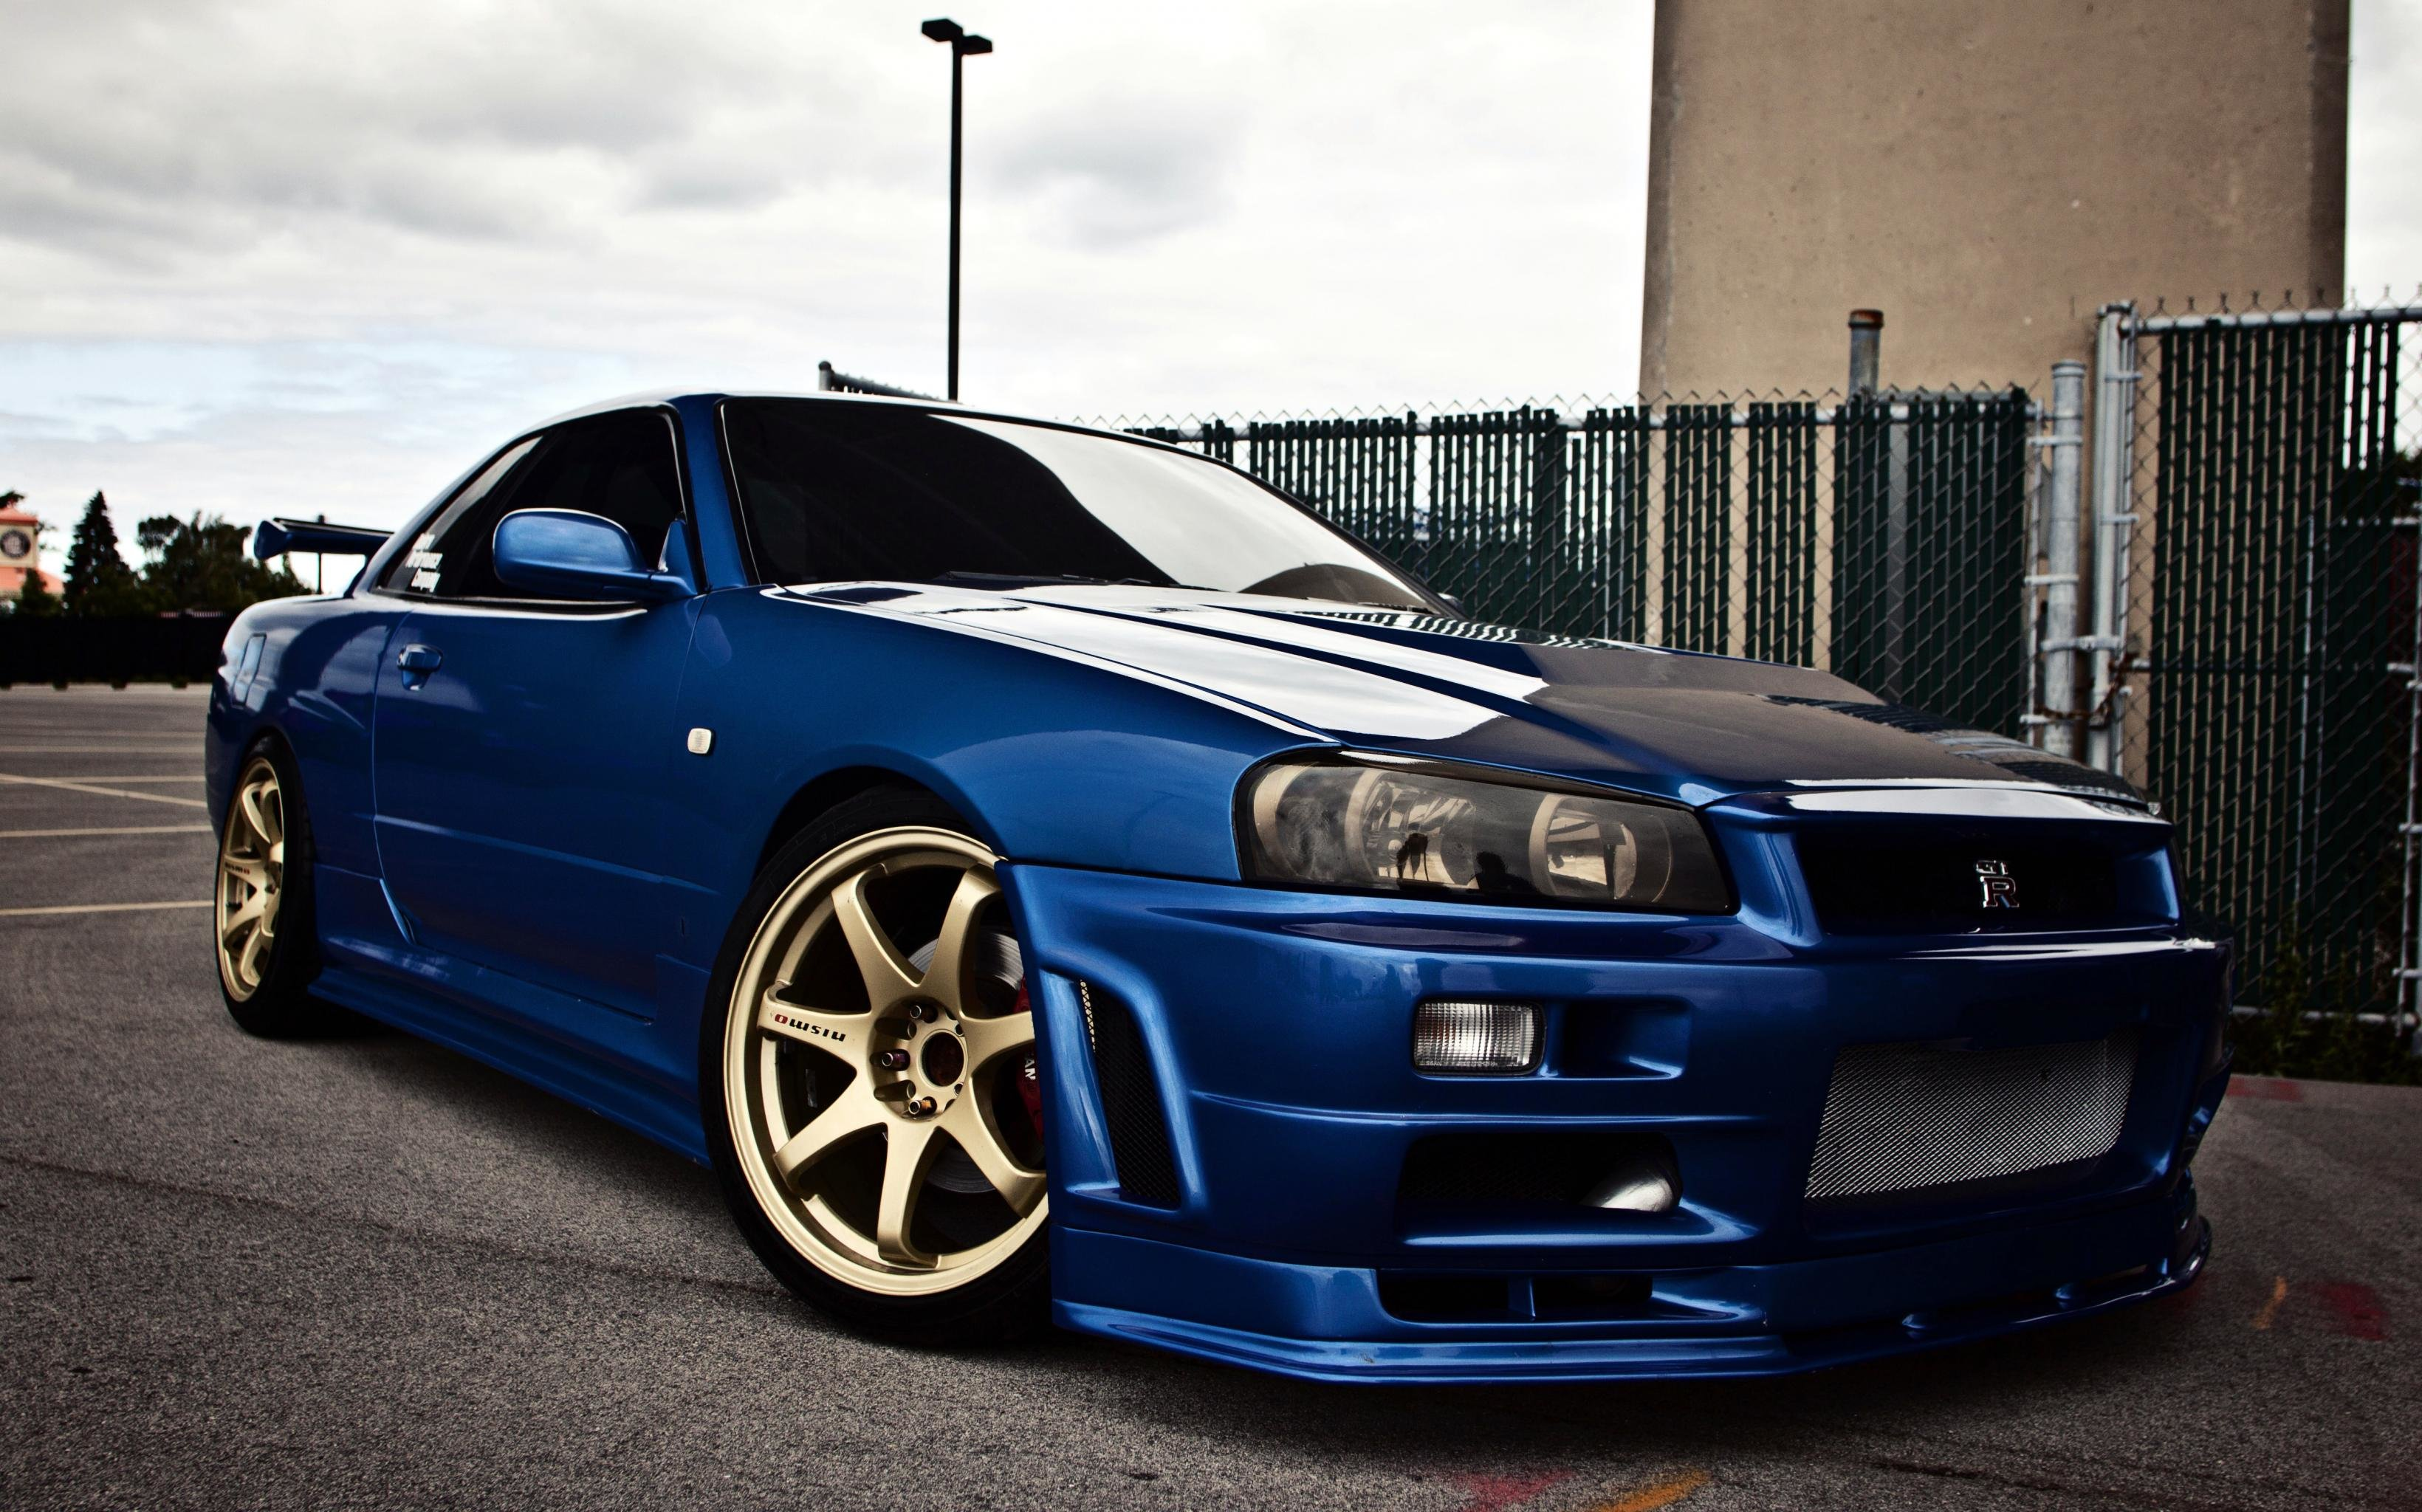 free download nissan skyline wallpaper id:250171 hd 3280x2048 for